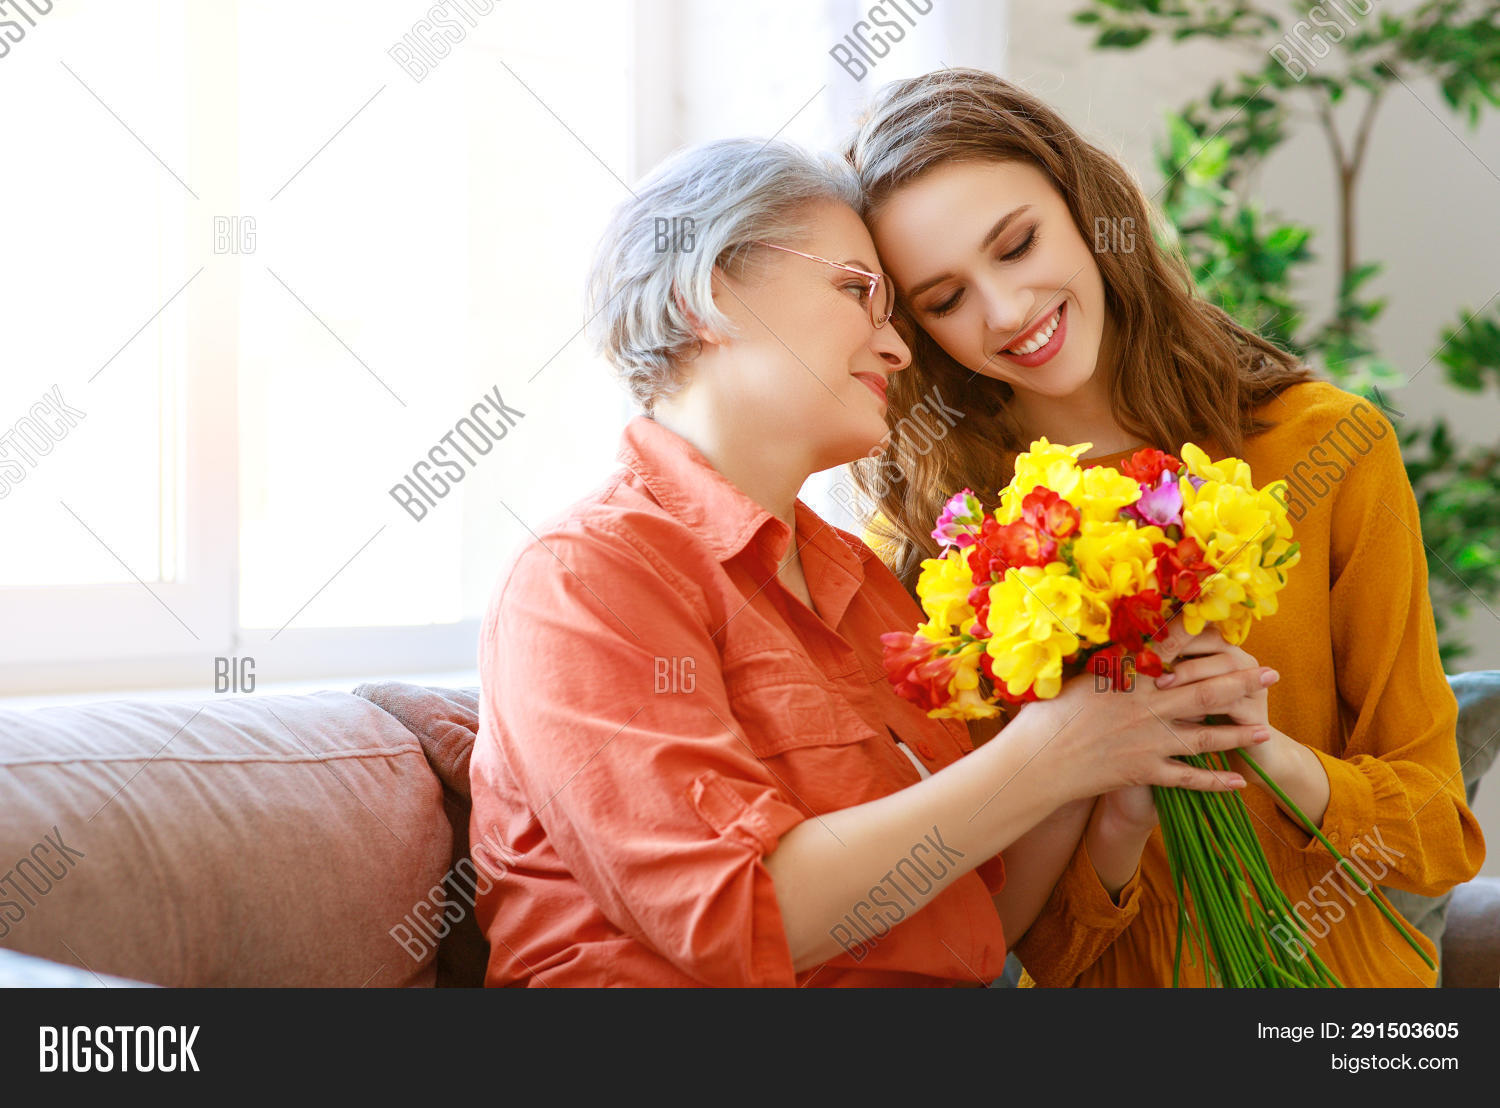 adult,beautiful,birthday,blonde,bouquet,care,caucasian,celebration,cheerful,child,daughter,day,elderly,face,family,female,flower,generation,gift,girl,giving,grandchild,granddaughter,grandmother,happy,holiday,home,kid,lifestyle,love,mature,mom,mother,old,older,parent,people,portrait,present,retired,senior,smile,smiling,sofa,surprise,together,two,white,woman,young